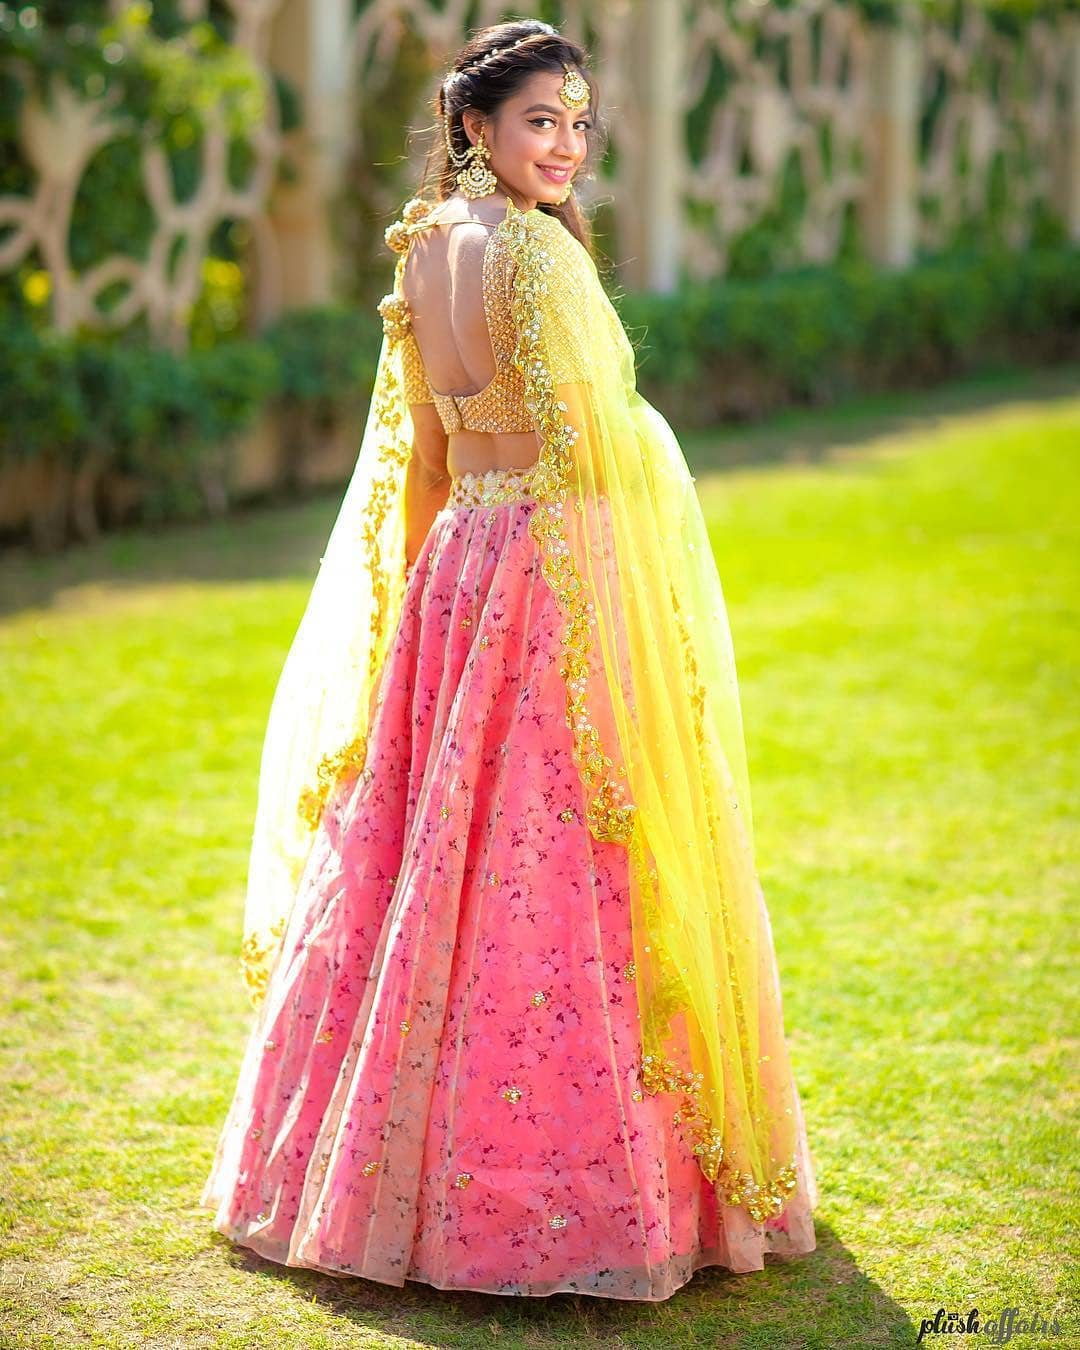 Combine it like a pro: Light Lehenga Designs for Bride & Bridesmaid